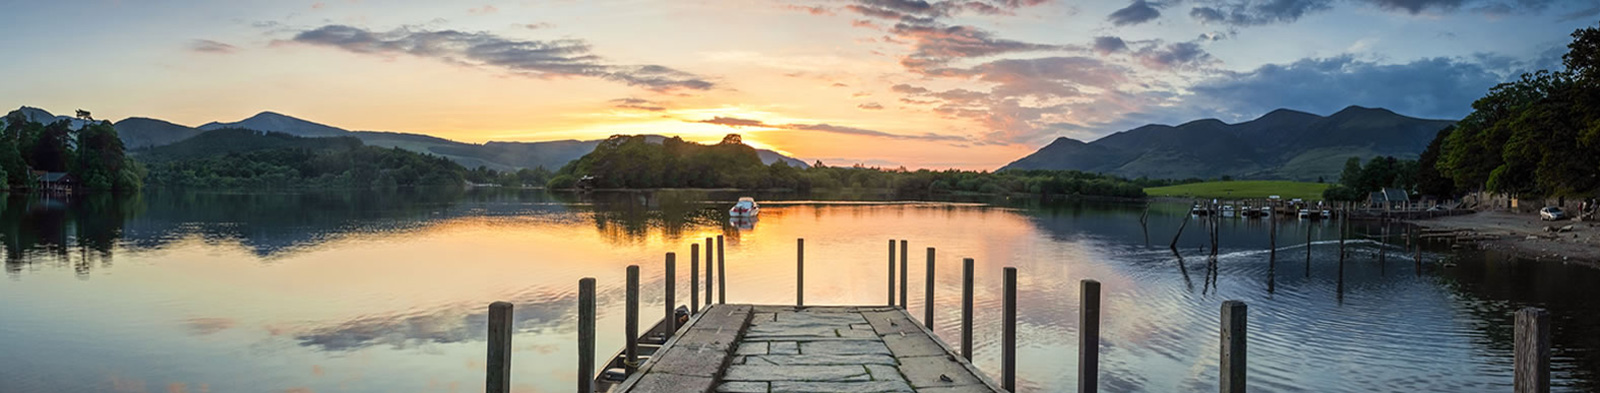 Explore-Lakes-District-Home-Page_03